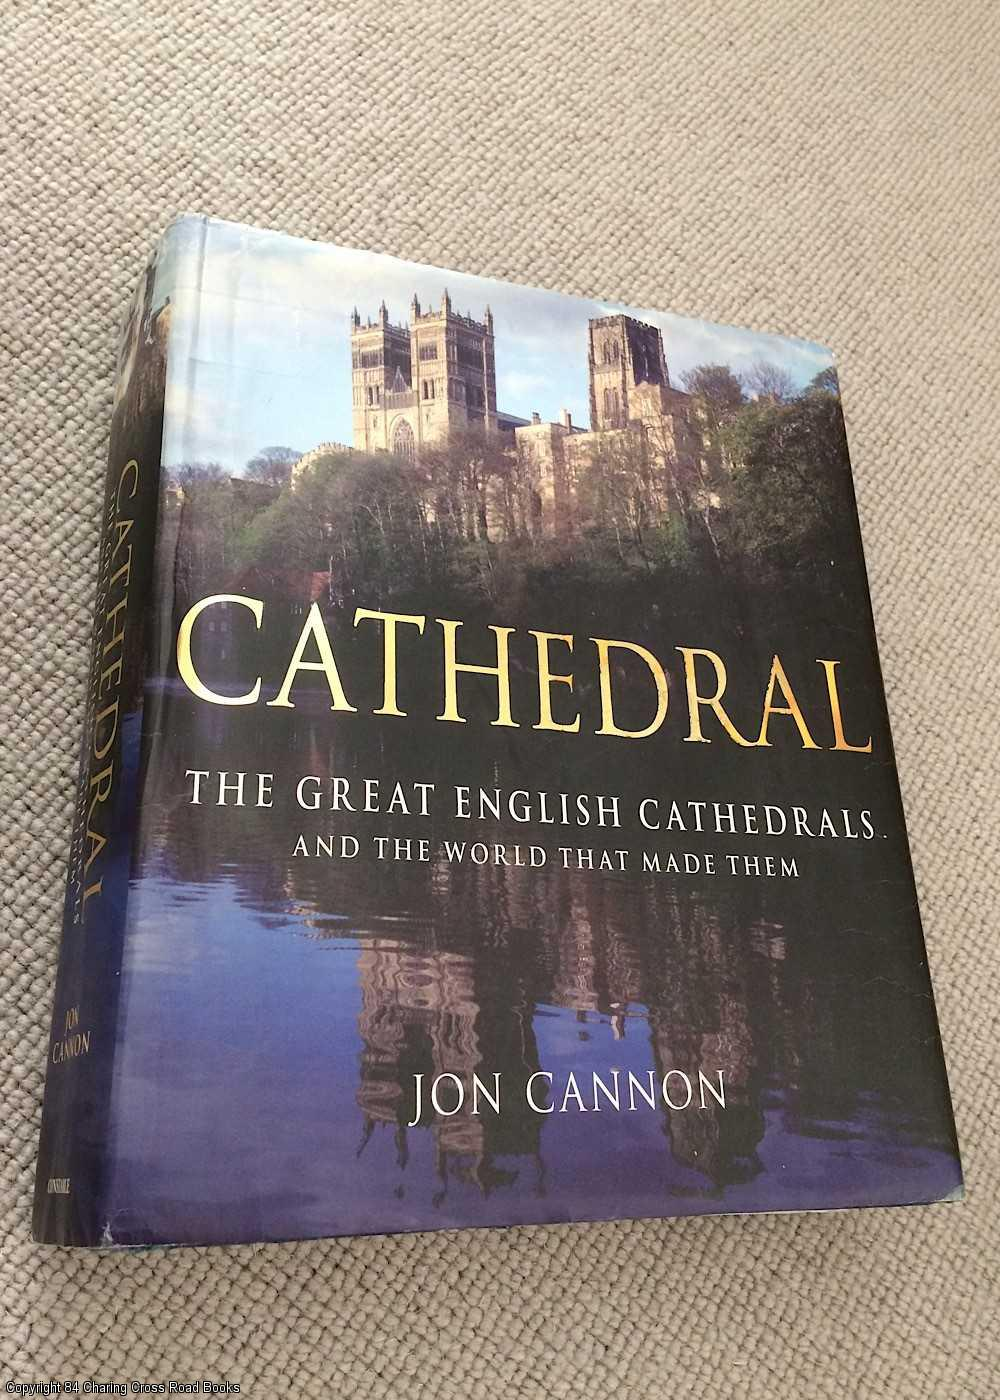 JON CANNON - Cathedral: The English Cathedrals and the World That Made Them